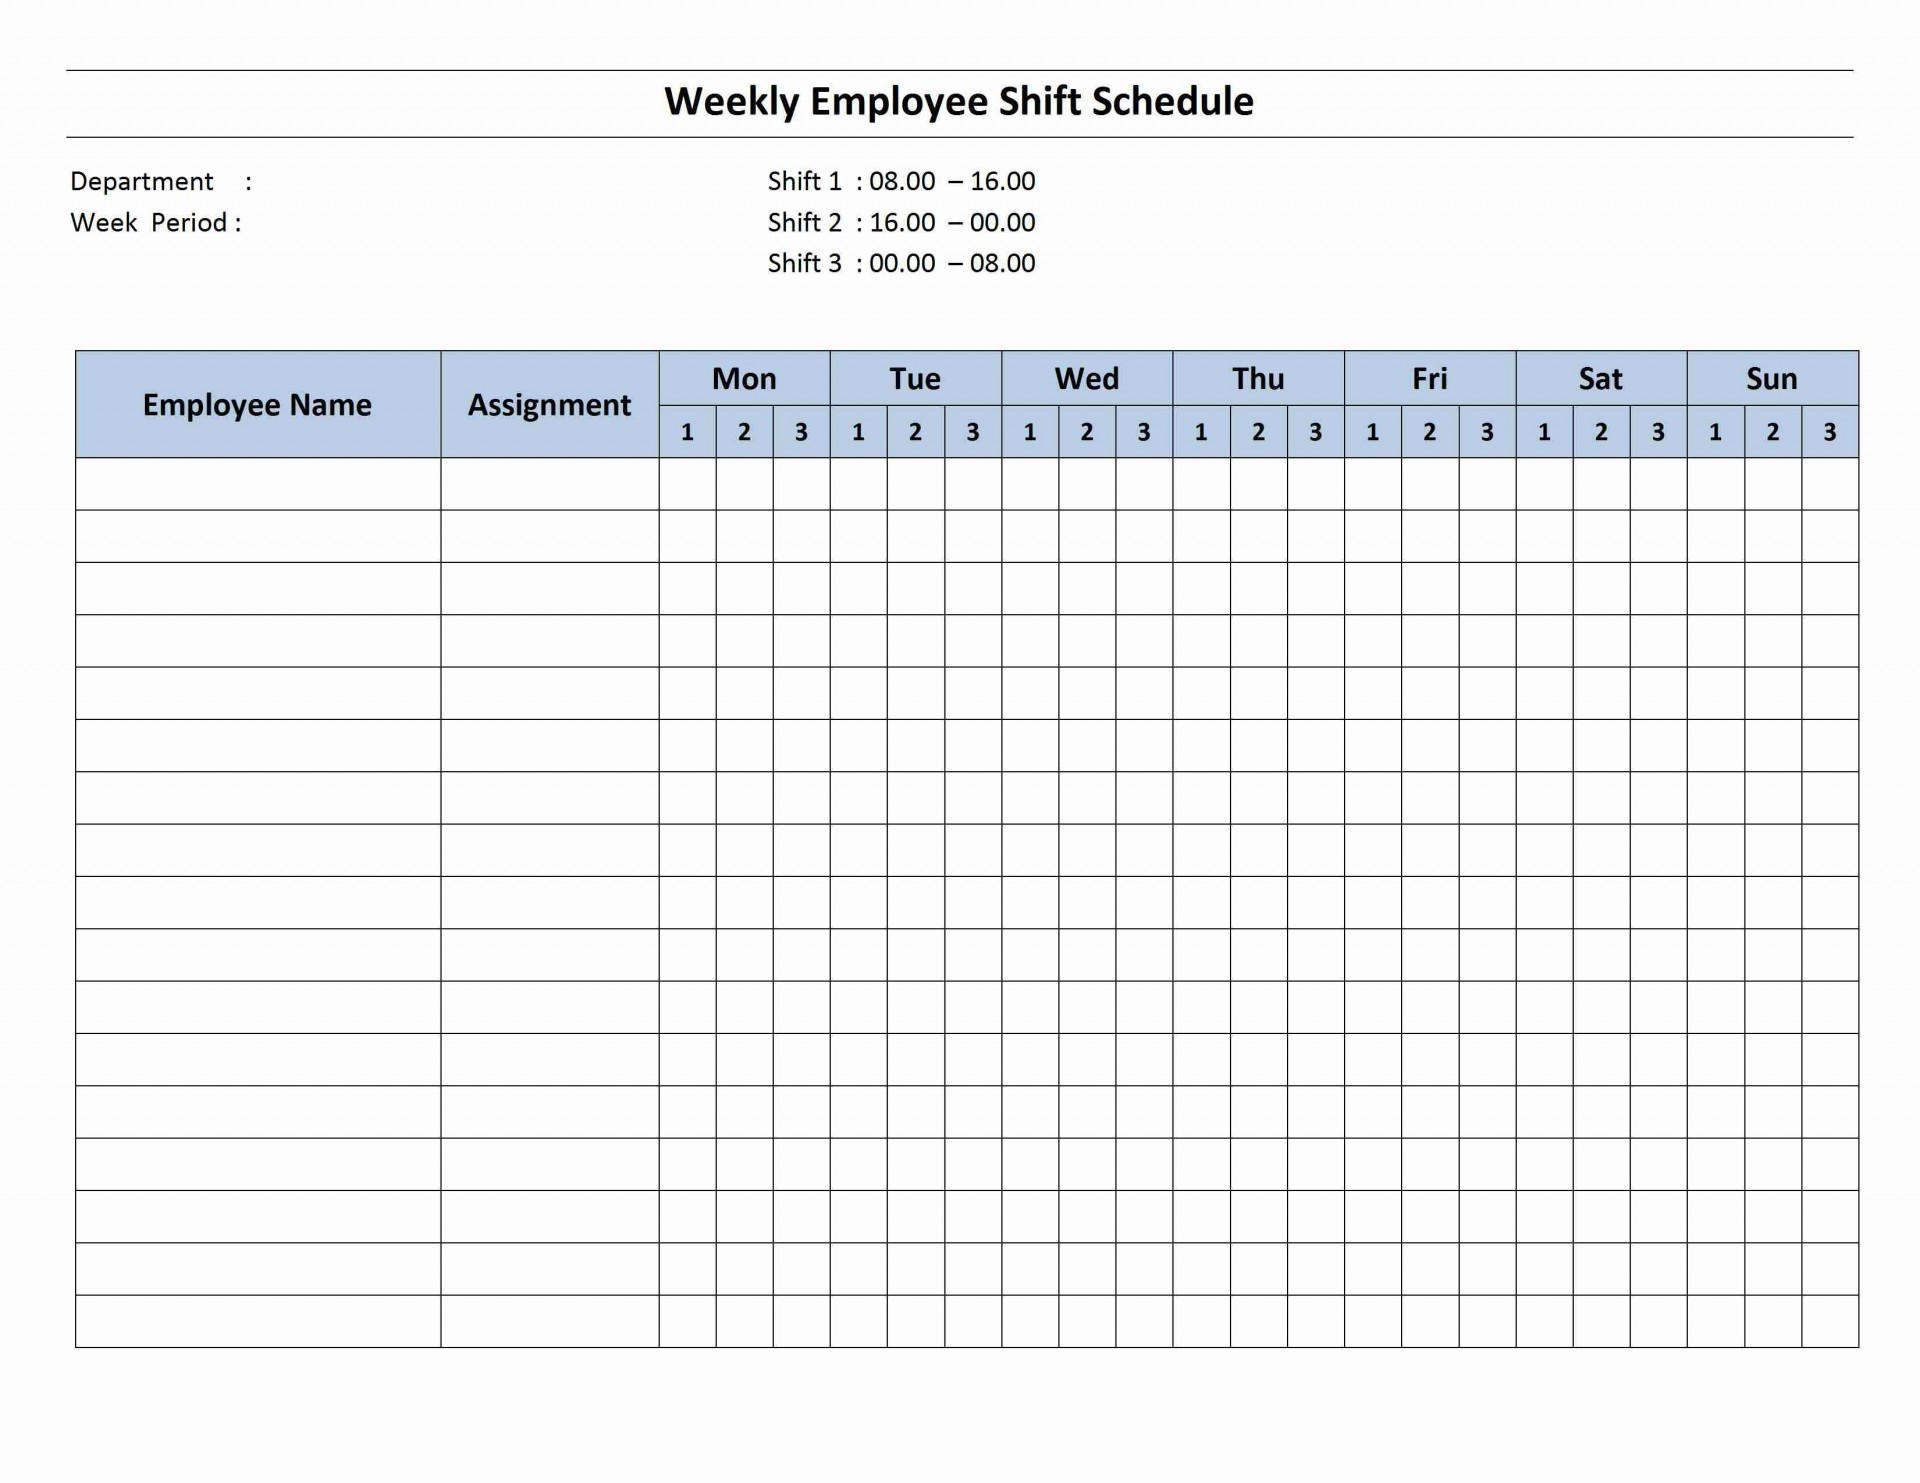 003 Stupendou Free Employee Scheduling Template Highest Quality  Templates Weekly Work Schedule Printable Training Plan Excel1920